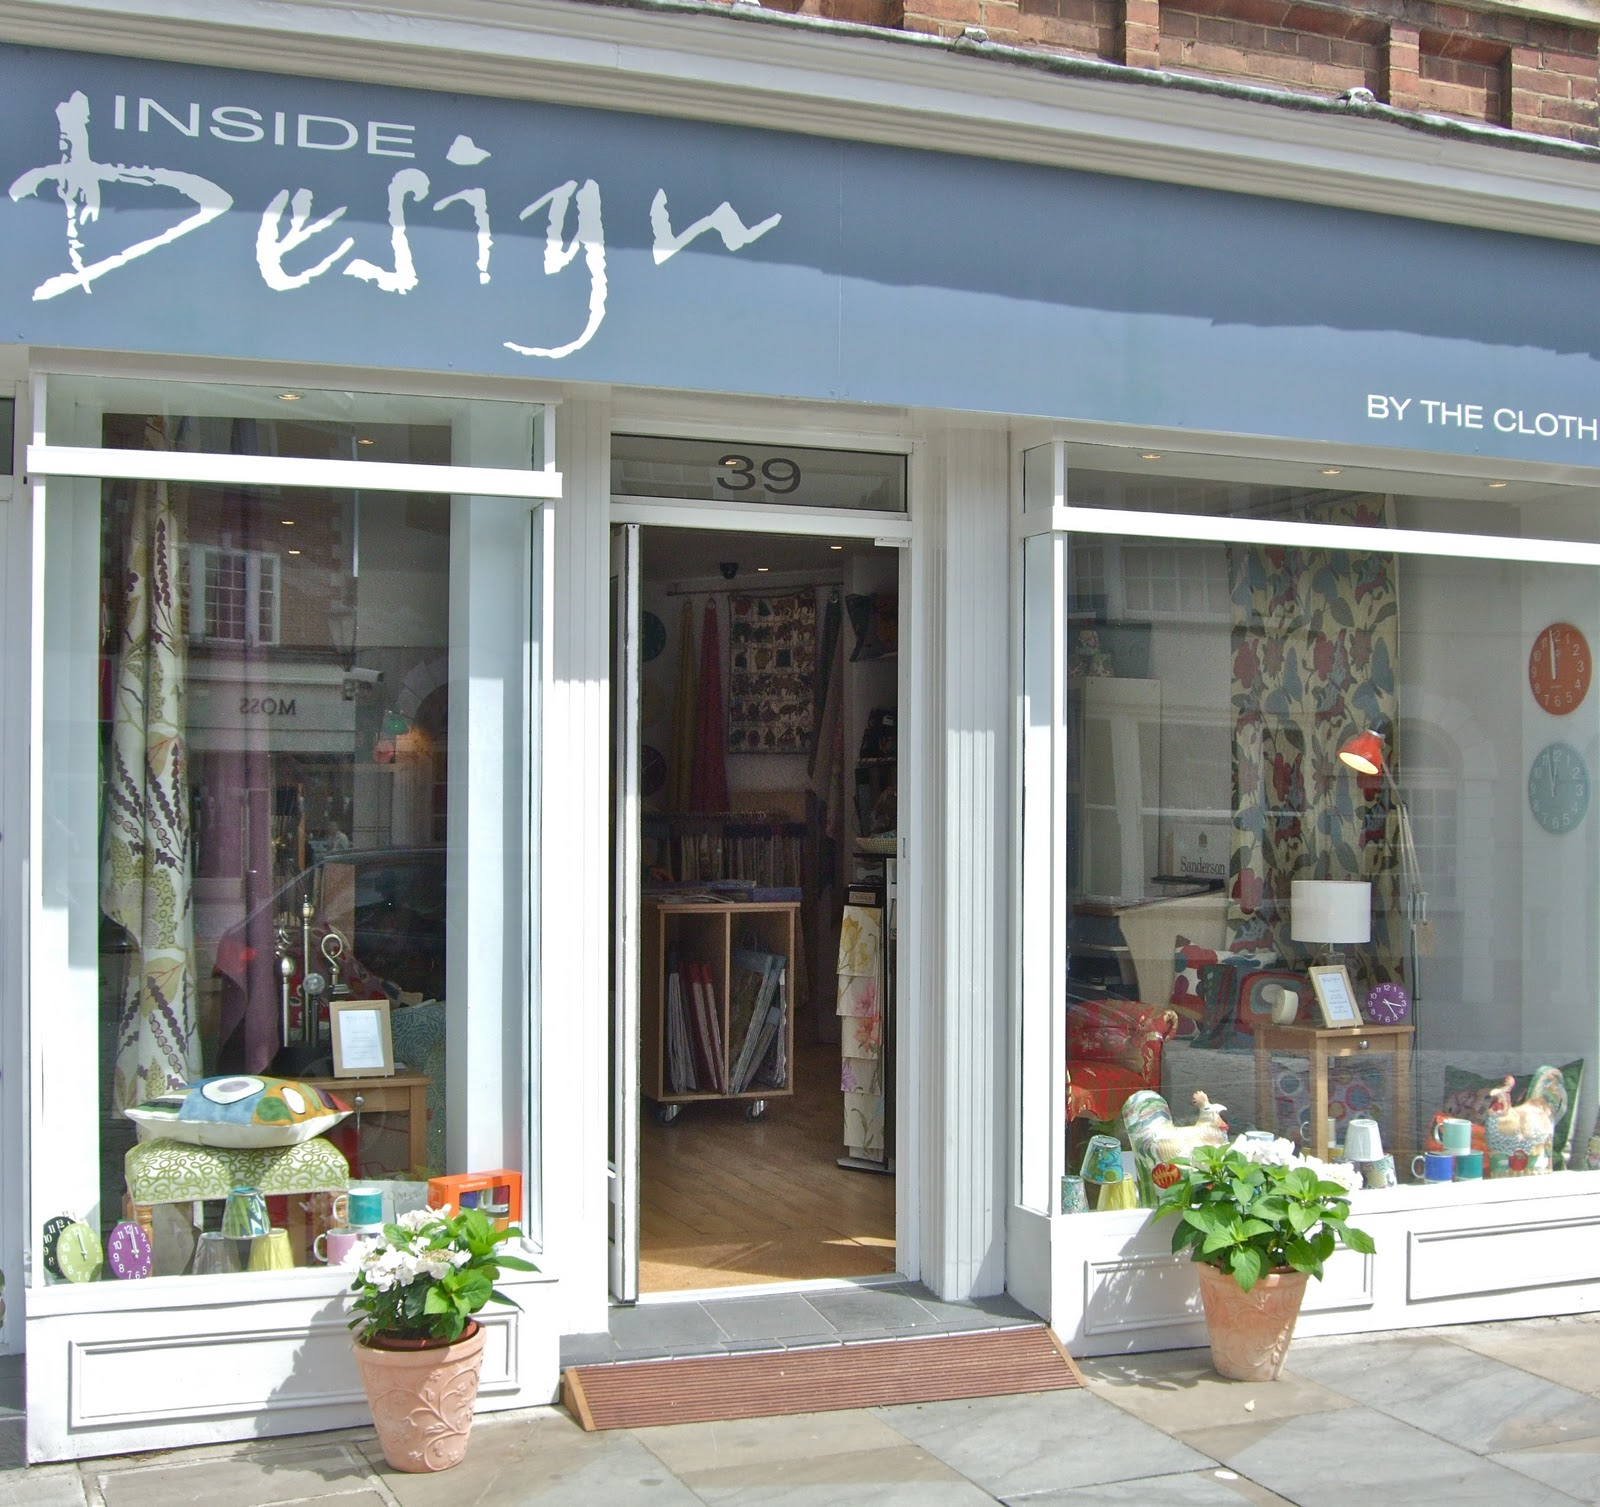 The Cloth Store: 'Inside Design' opens in Horsham